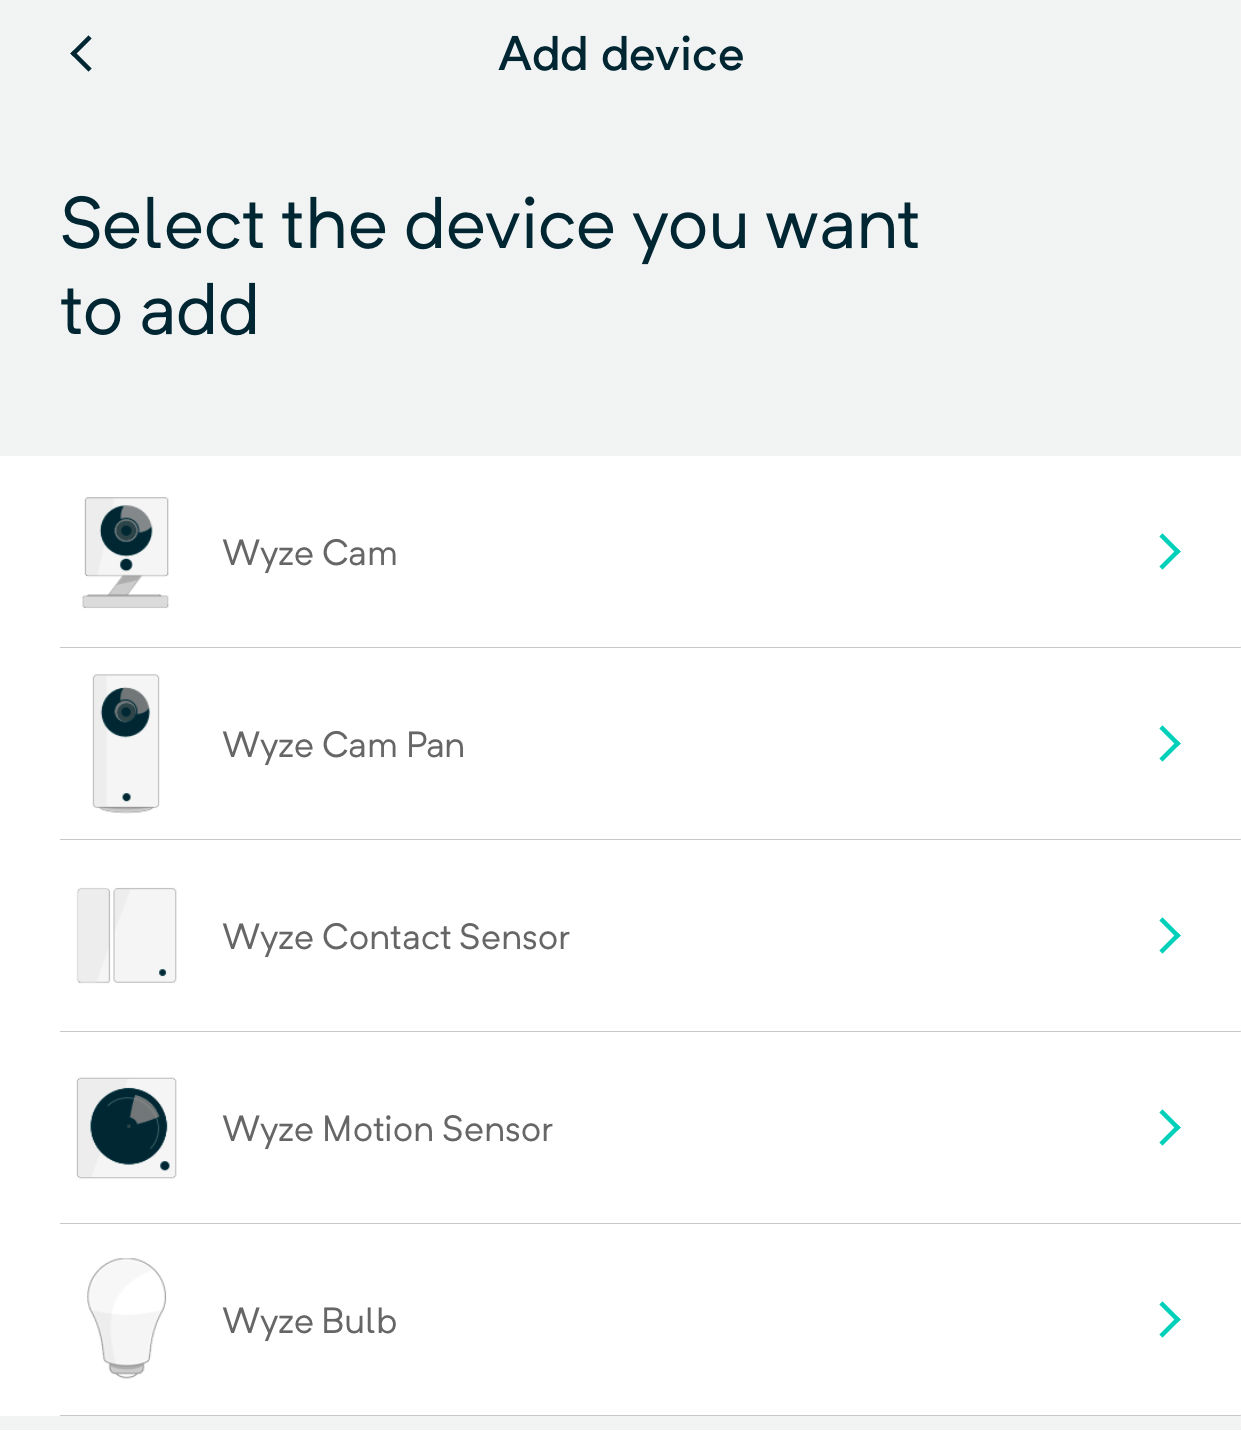 Wyze Cam Cannot Connect To Local Network